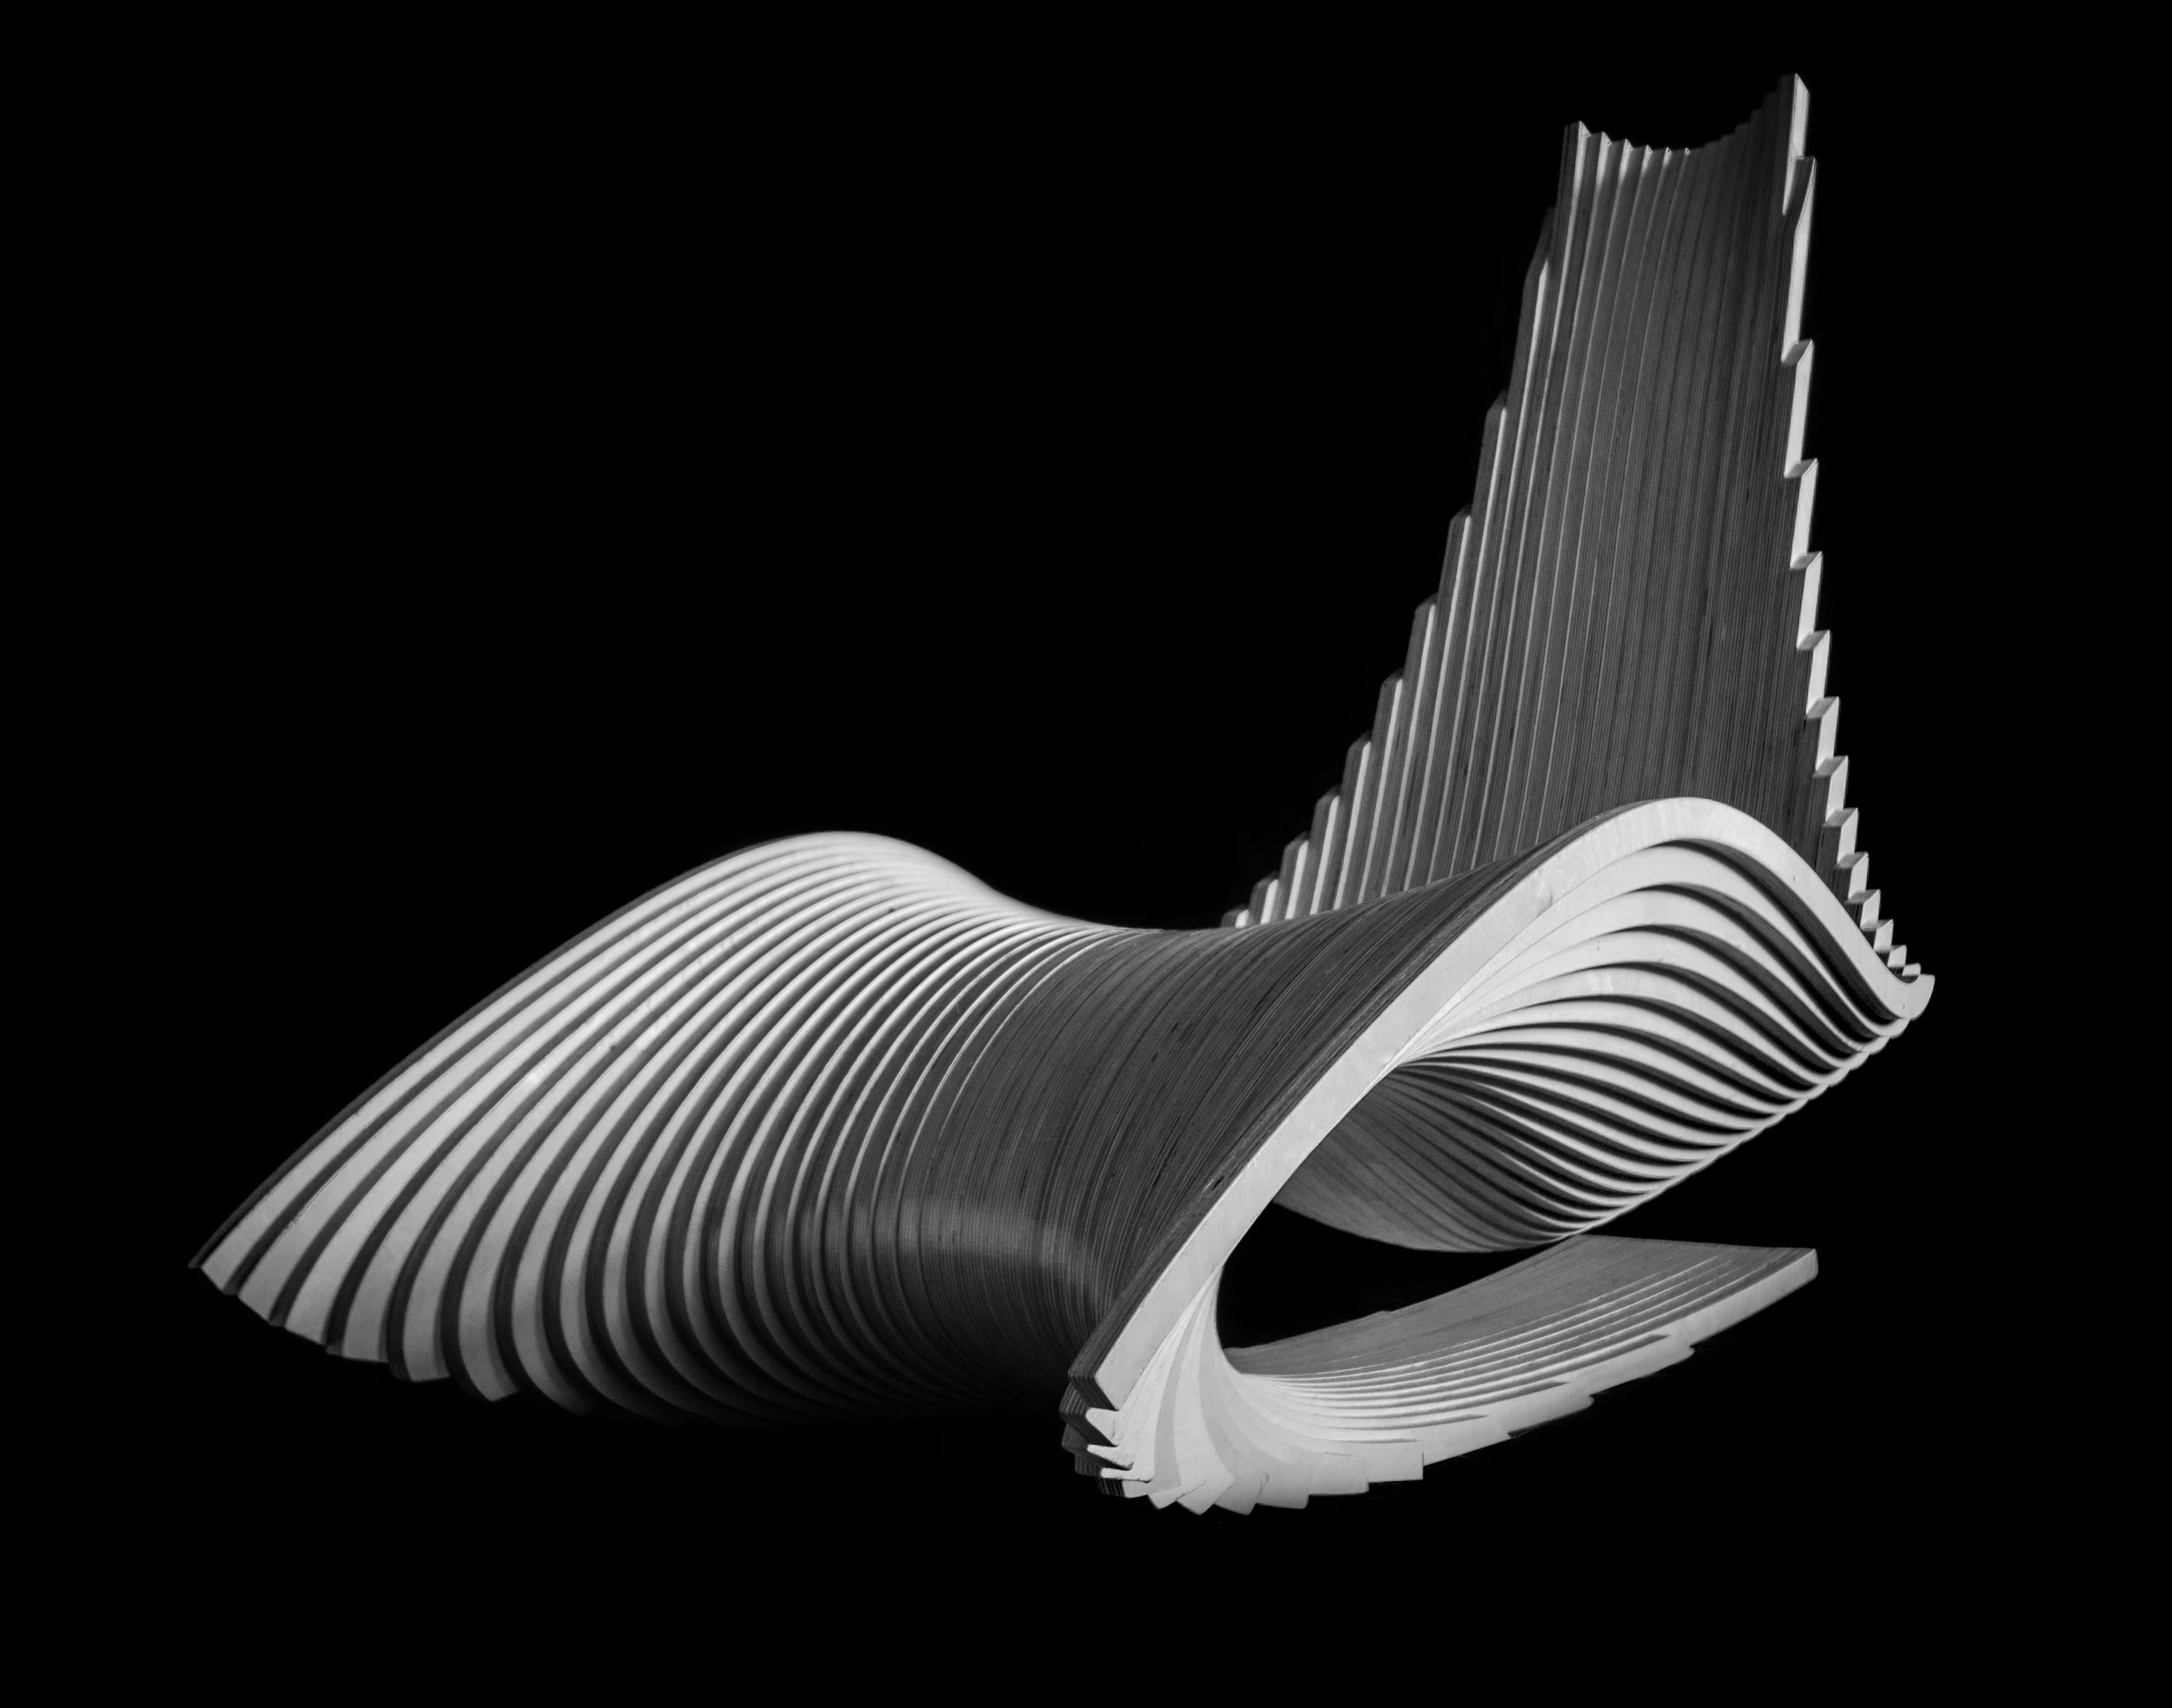 Ahmed El Husseiny/AE Superlab.   The Diwani Chair , 2015. Atlantic birch plywood. 42 x 31 x 53 in. Courtesy of Ahmed El Husseiny/AE Superlab. 2016.AES.01.  Photo:  Ahmed ElHusseiny/AE Superlab  METHOD: CNC router, hand block sander